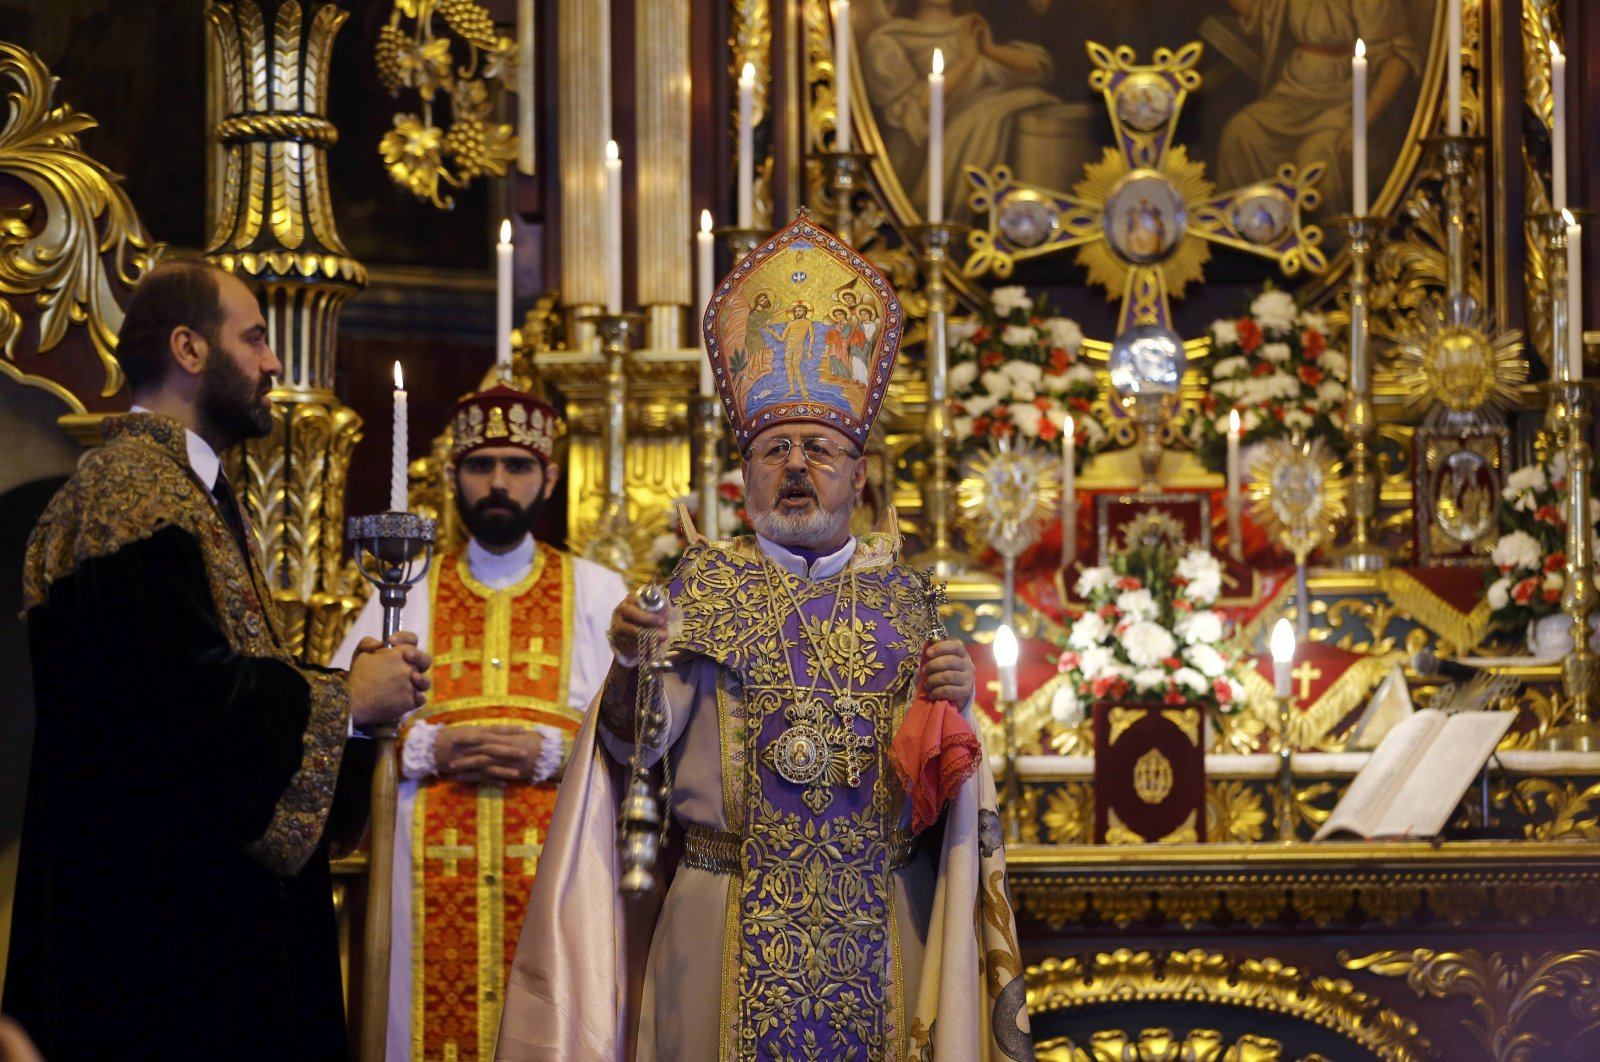 Archbishop Aram Ateşyan (C), the former general vicar of the Armenian Patriarch in Turkey, holds a mass at Surp Asdvadzadzin Patriarchal Church as part of events to commemorate the Armenian losses during the 1915 events at the centennial ceremony, Istanbul, Turkey, April 24, 2015. (Reuters Photo)